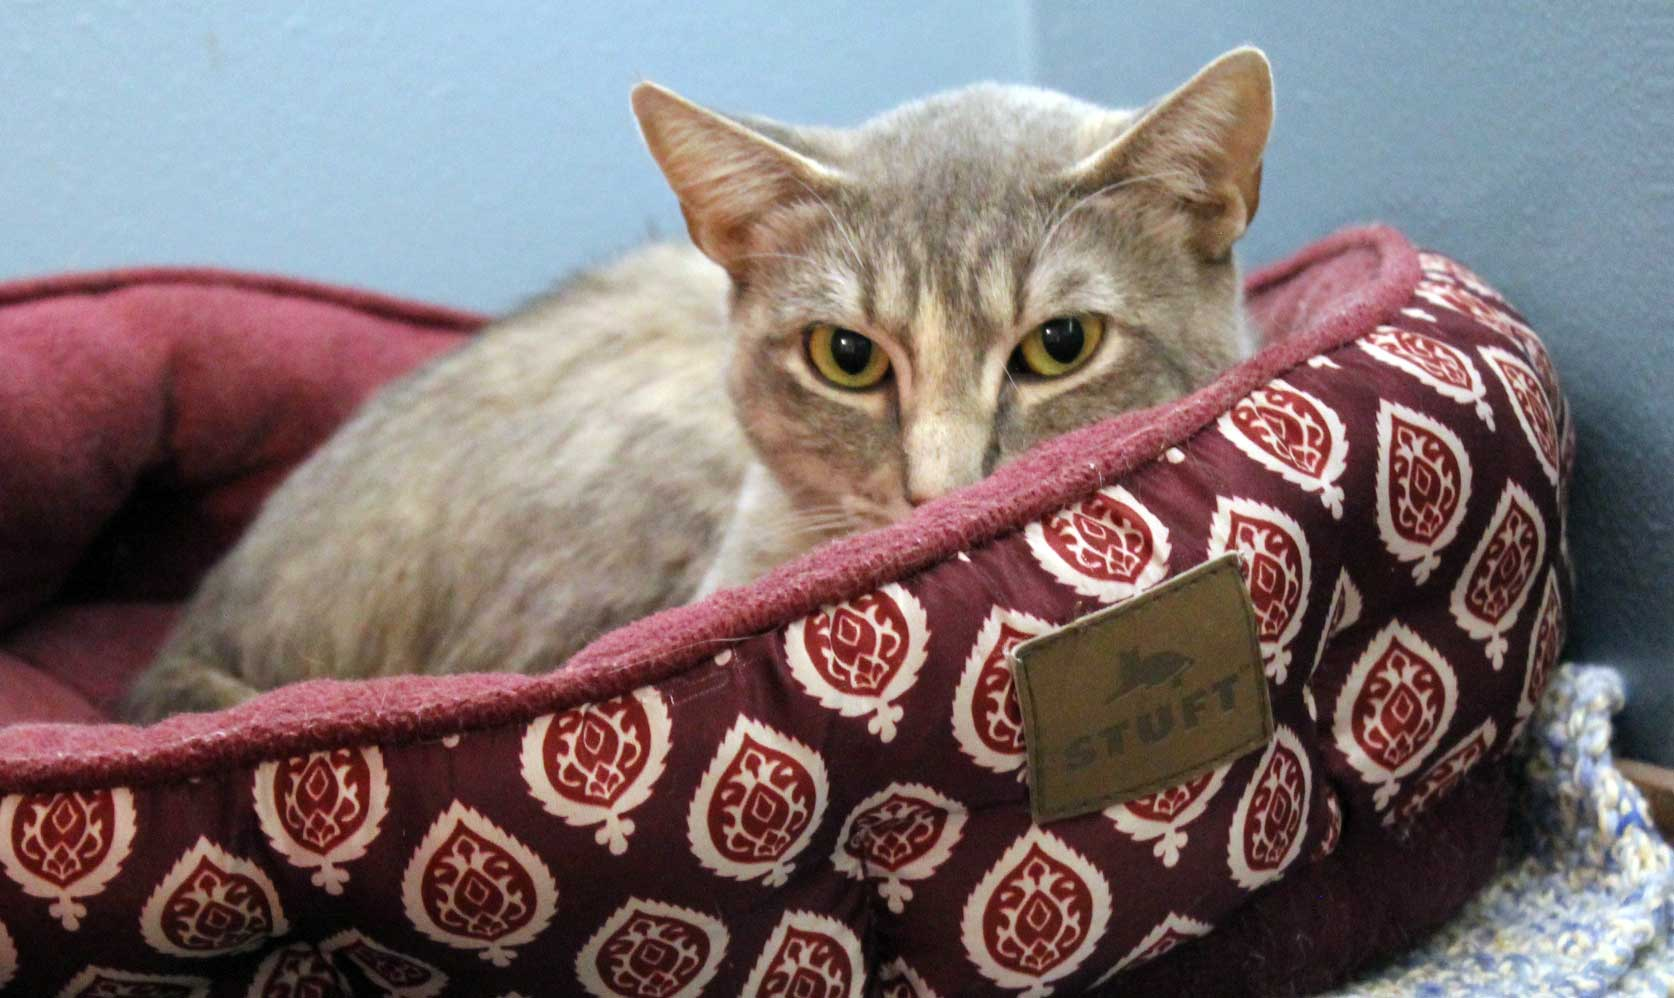 Tiger Lily finds her perfect home